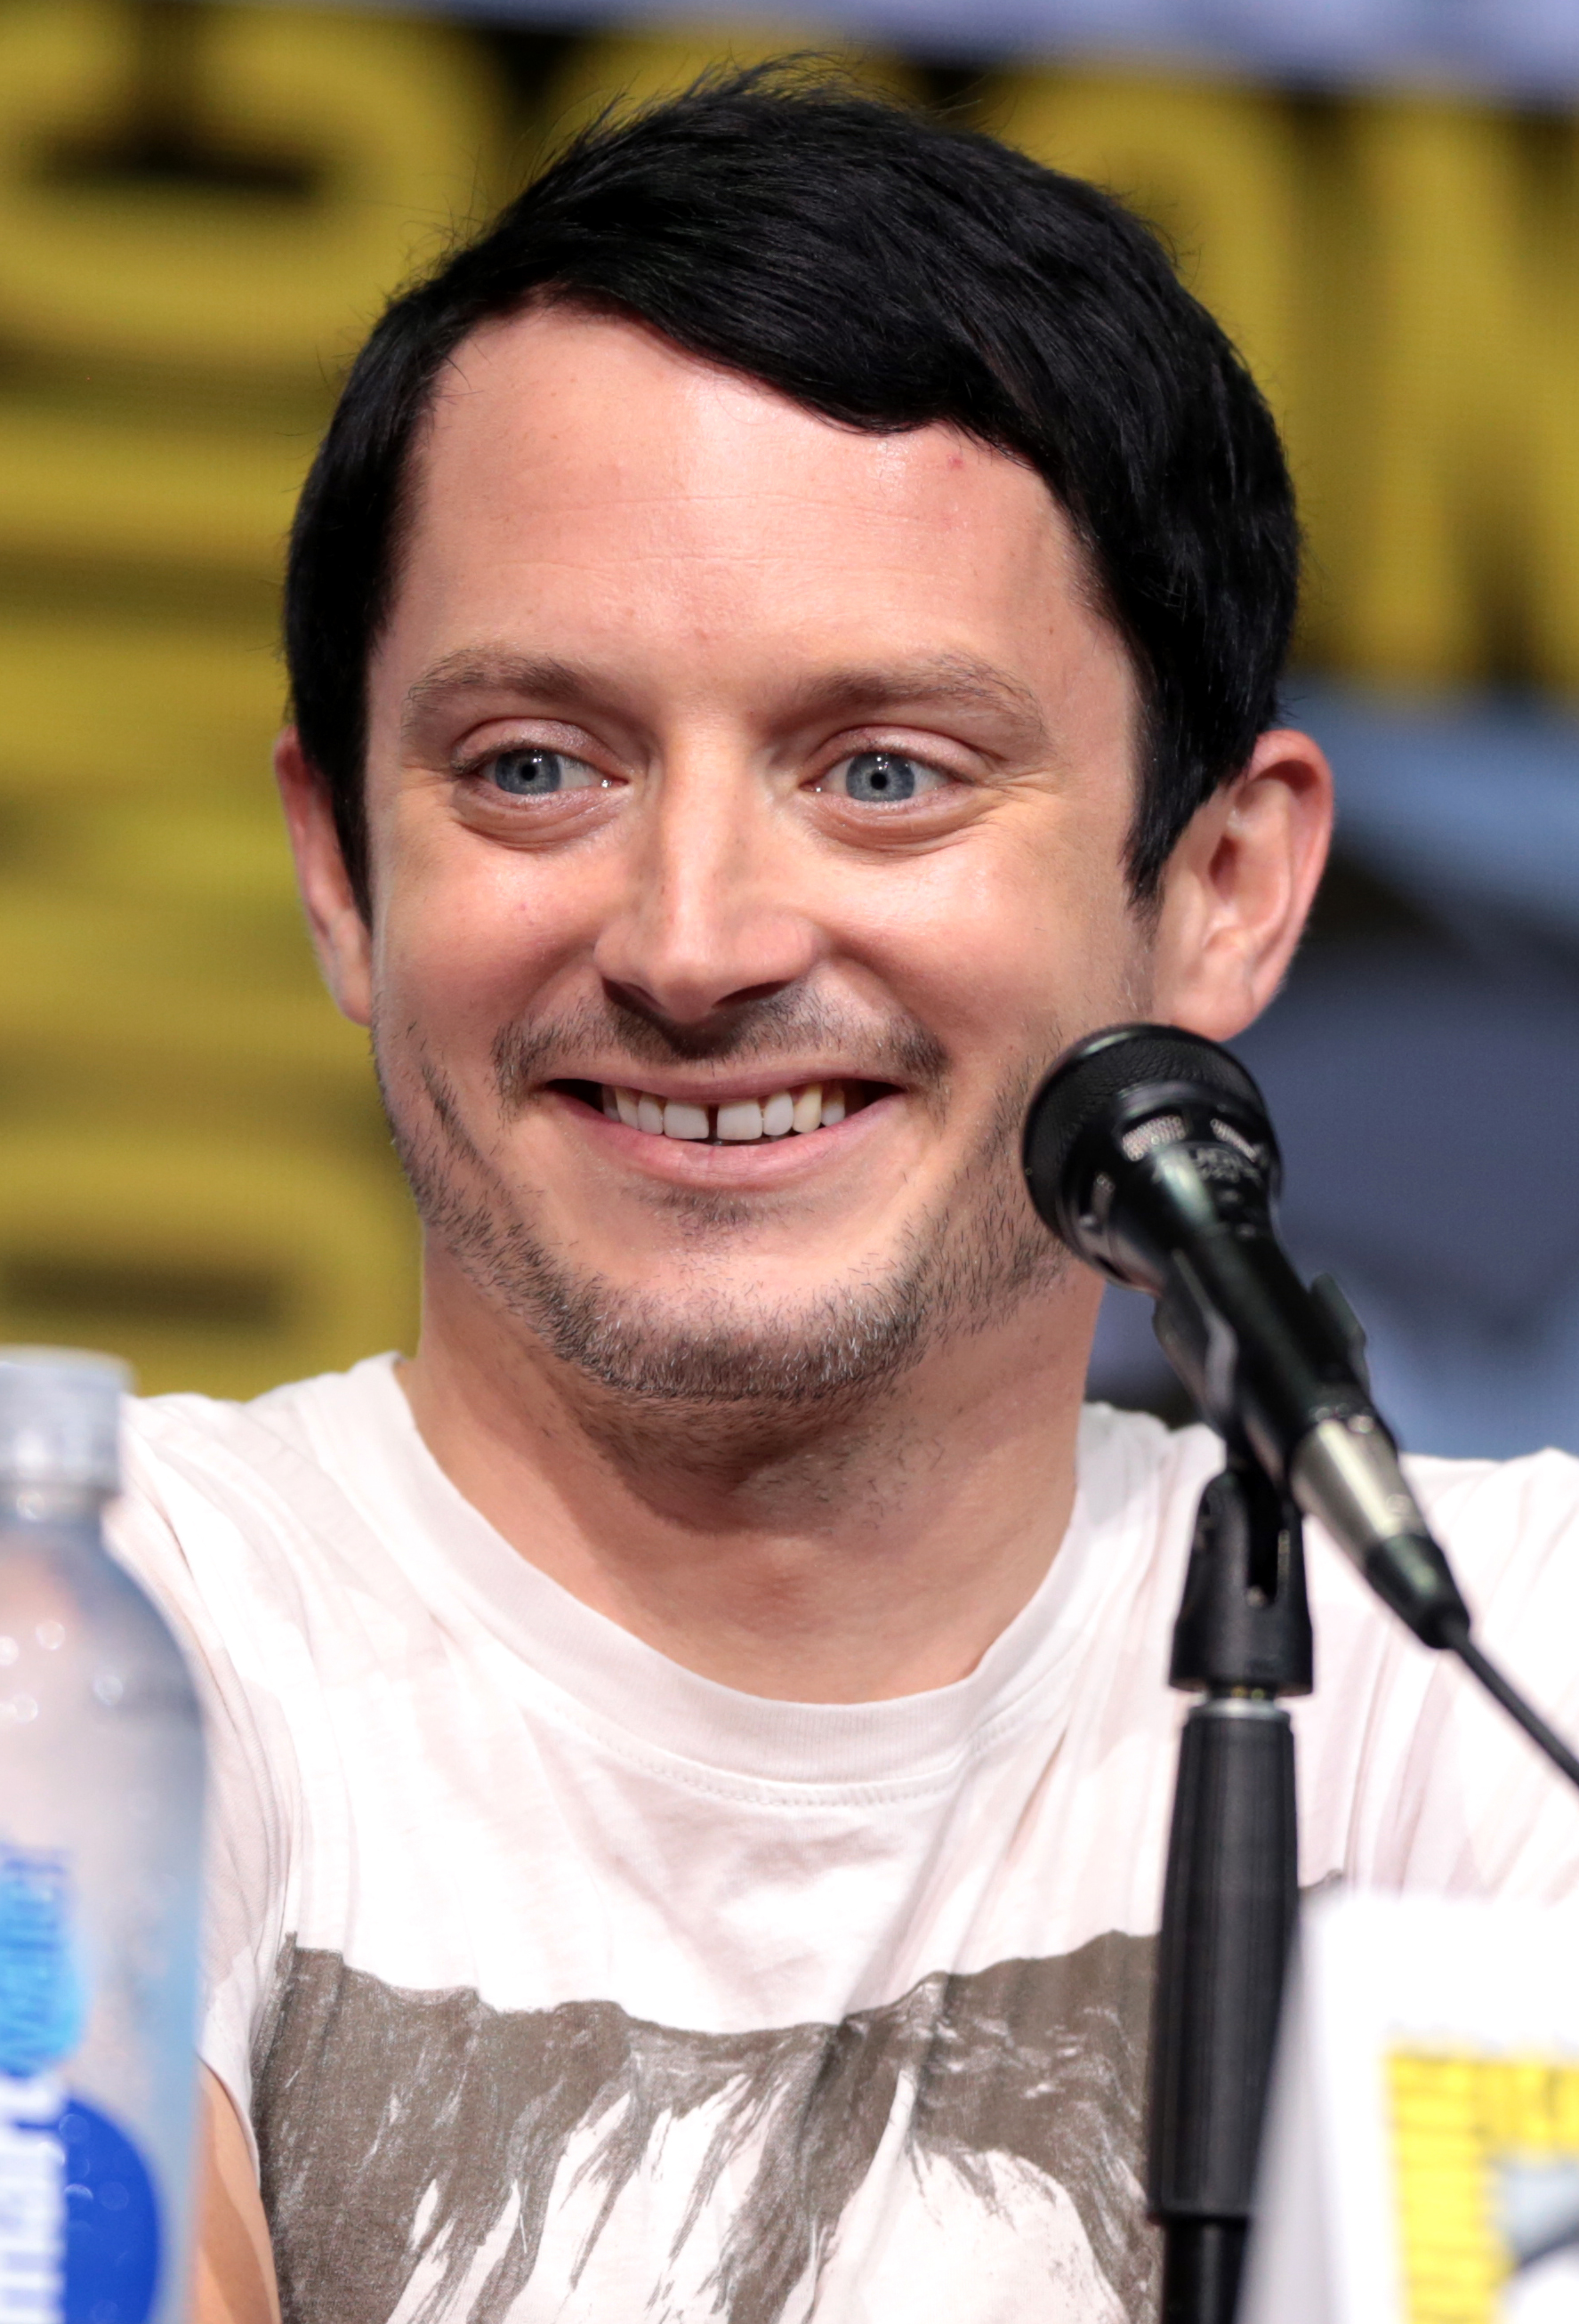 The 37-year old son of father Warren Wood and mother Debbie Wood Elijah Wood in 2018 photo. Elijah Wood earned a  million dollar salary - leaving the net worth at 18 million in 2018